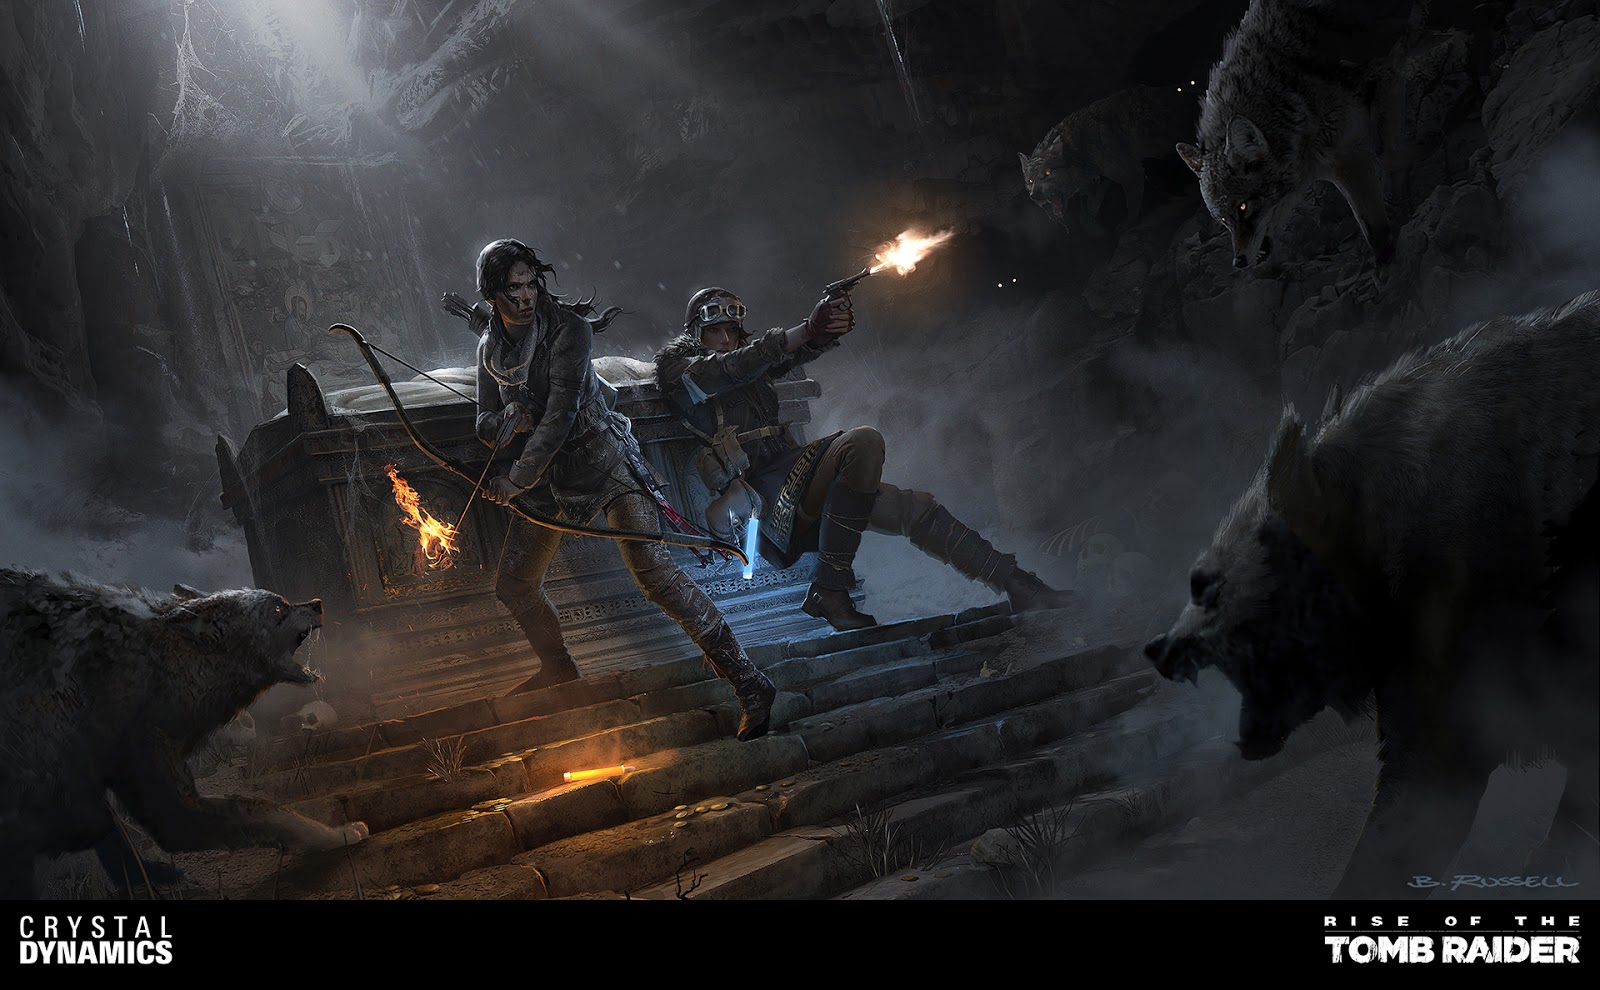 Rise of the Tomb Raider Concept Art by Brandon Russell